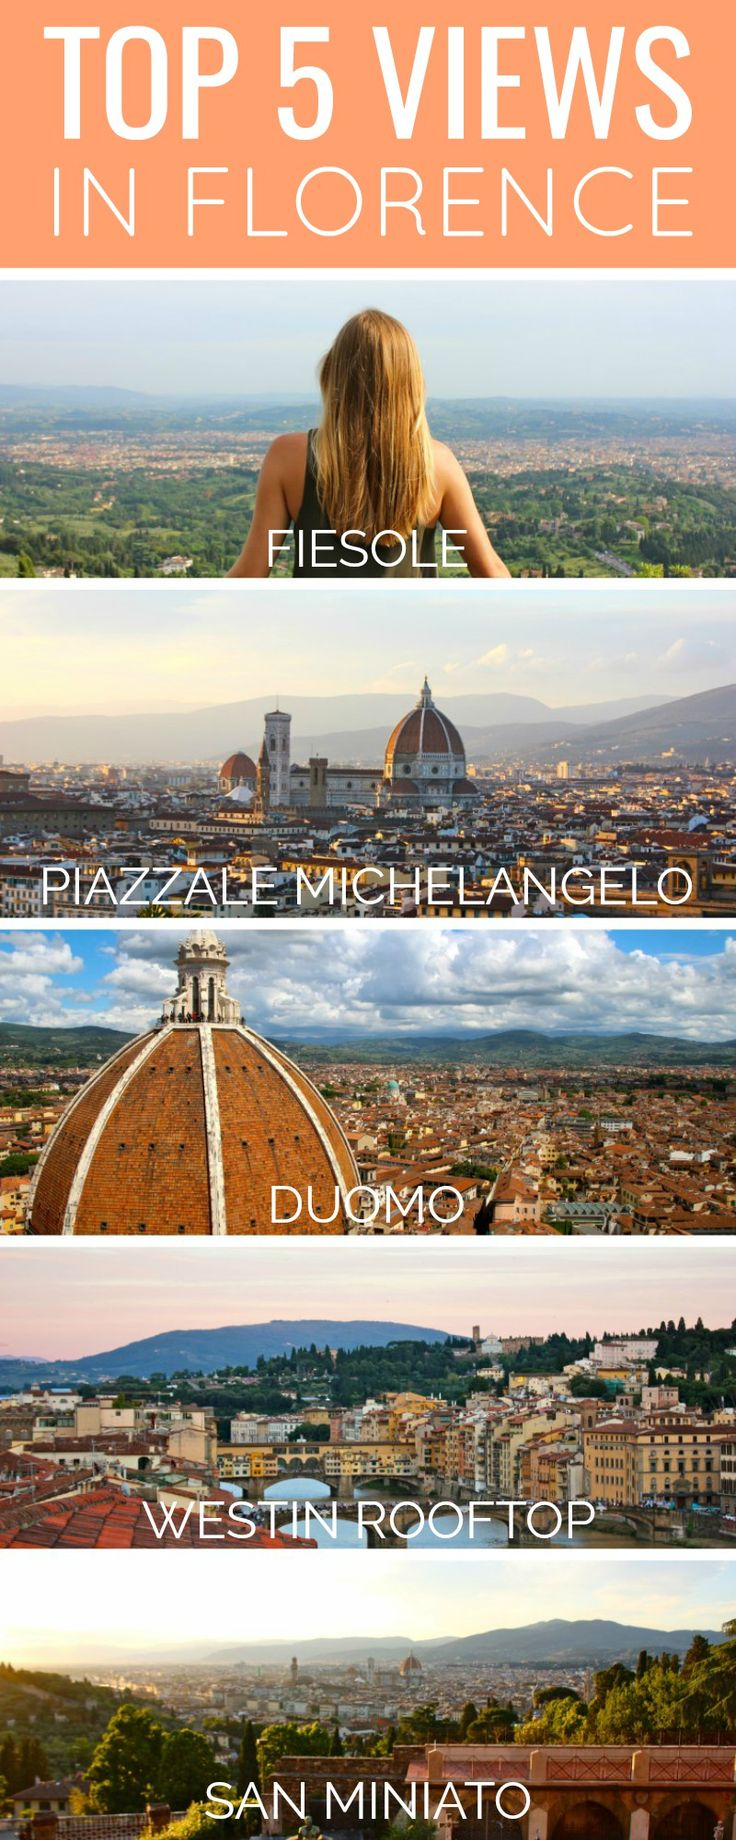 Top 5 Views in Florence (And Where to Find Them!) | Discover where to find the best views in Florence, Italy. Have a romantic dinner in Fiesole, climb the Duomo, watch the sun set at Piazzale Michelangelo, or try some rooftop cocktails.